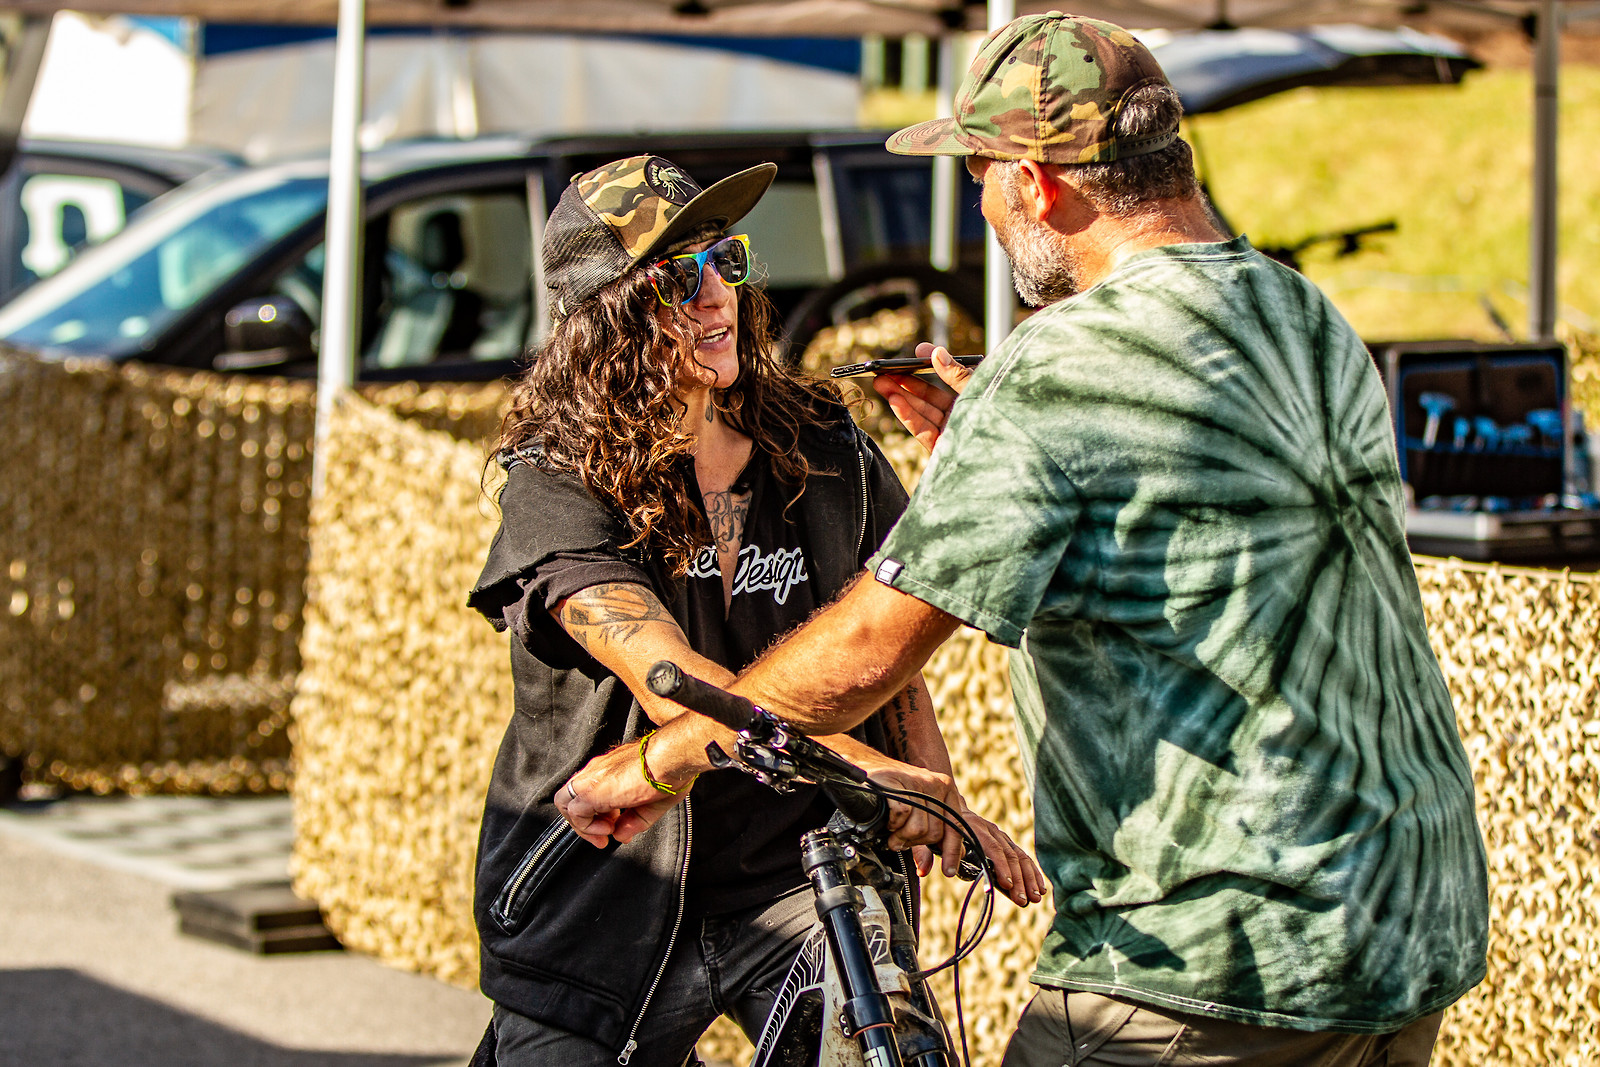 Sven Martin interviewing 'The Missile,' Missy Giove - JackRice - Mountain Biking Pictures - Vital MTB